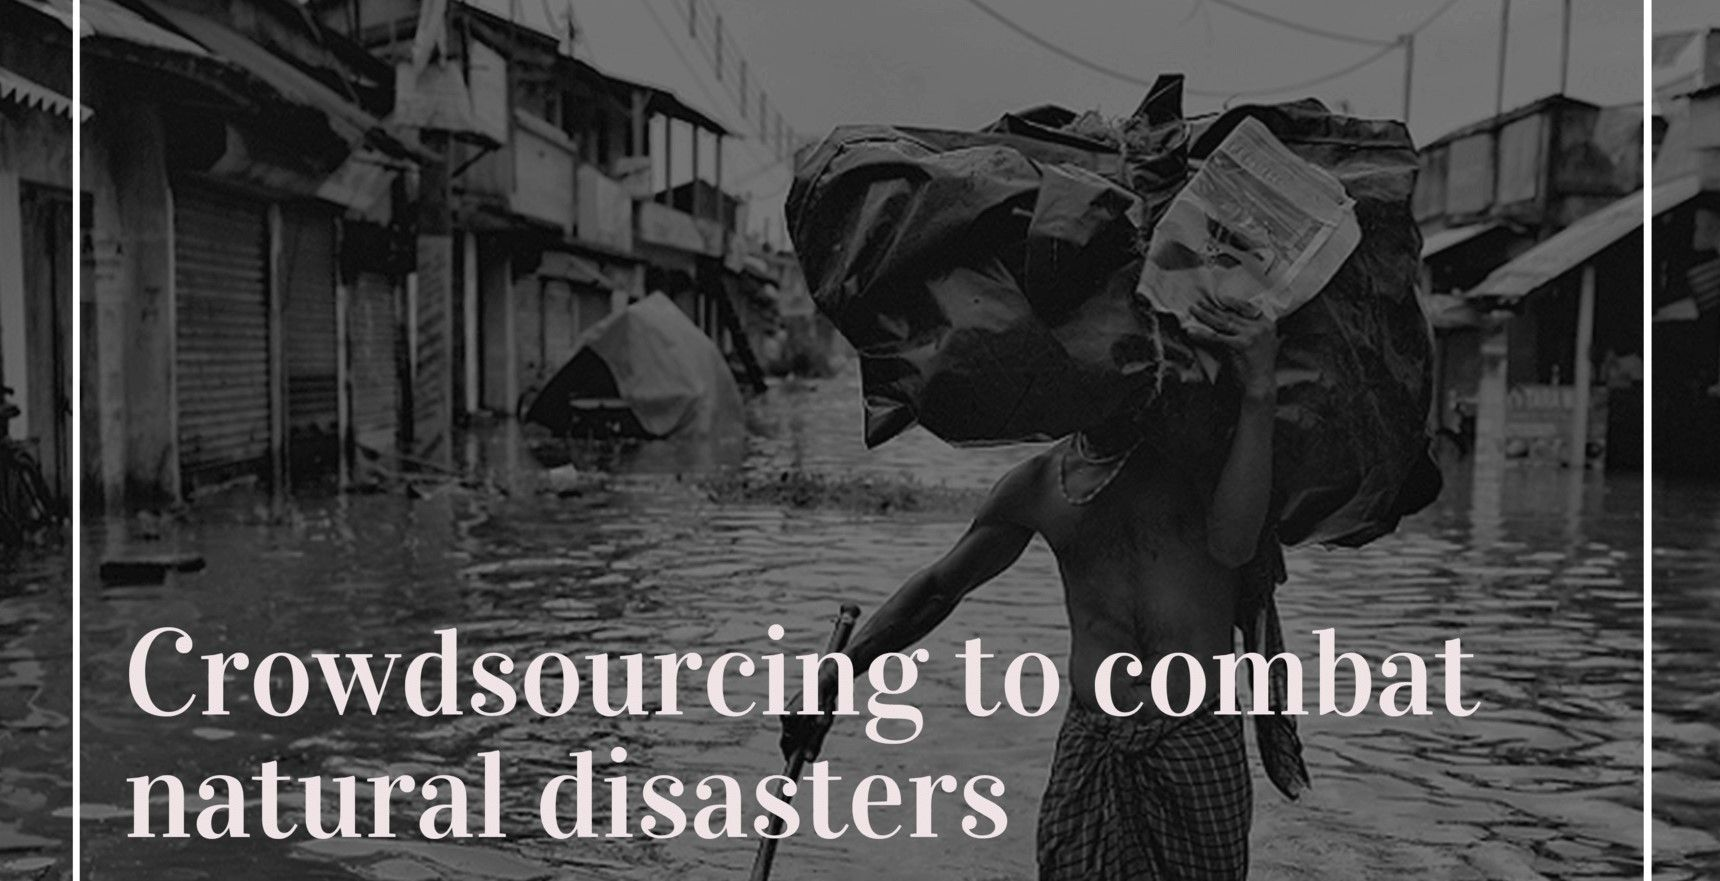 Crowdsourcing to Combat Natural Disasters